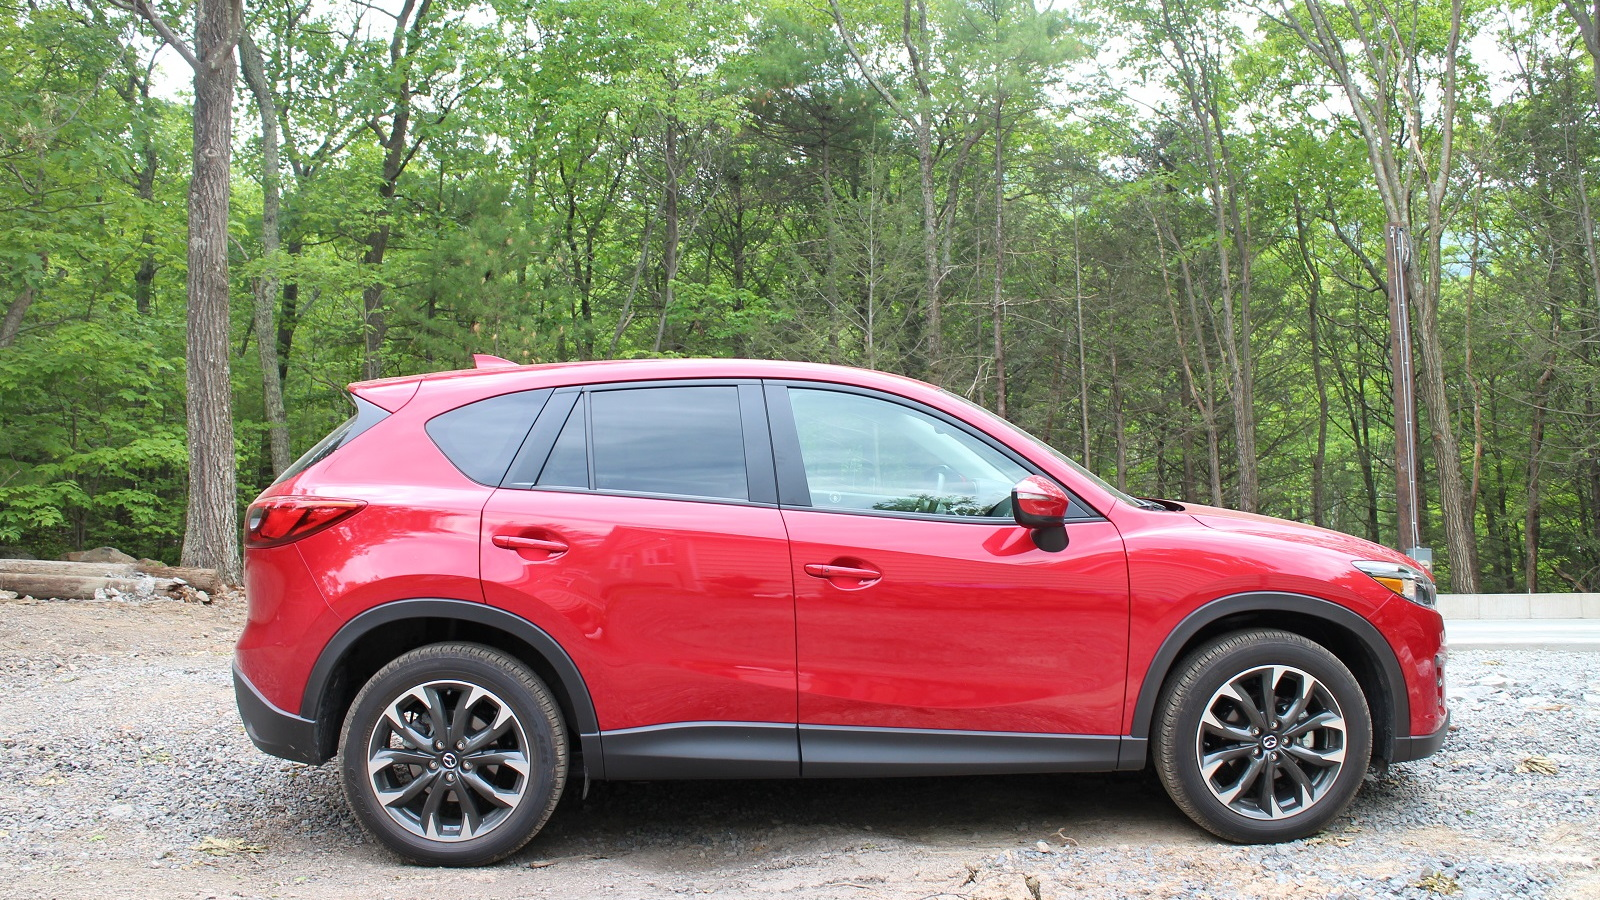 Mazda Cx 5 Gas Mileage >> 2016 Mazda Cx 5 Grand Touring Gas Mileage Review Of Small Suv